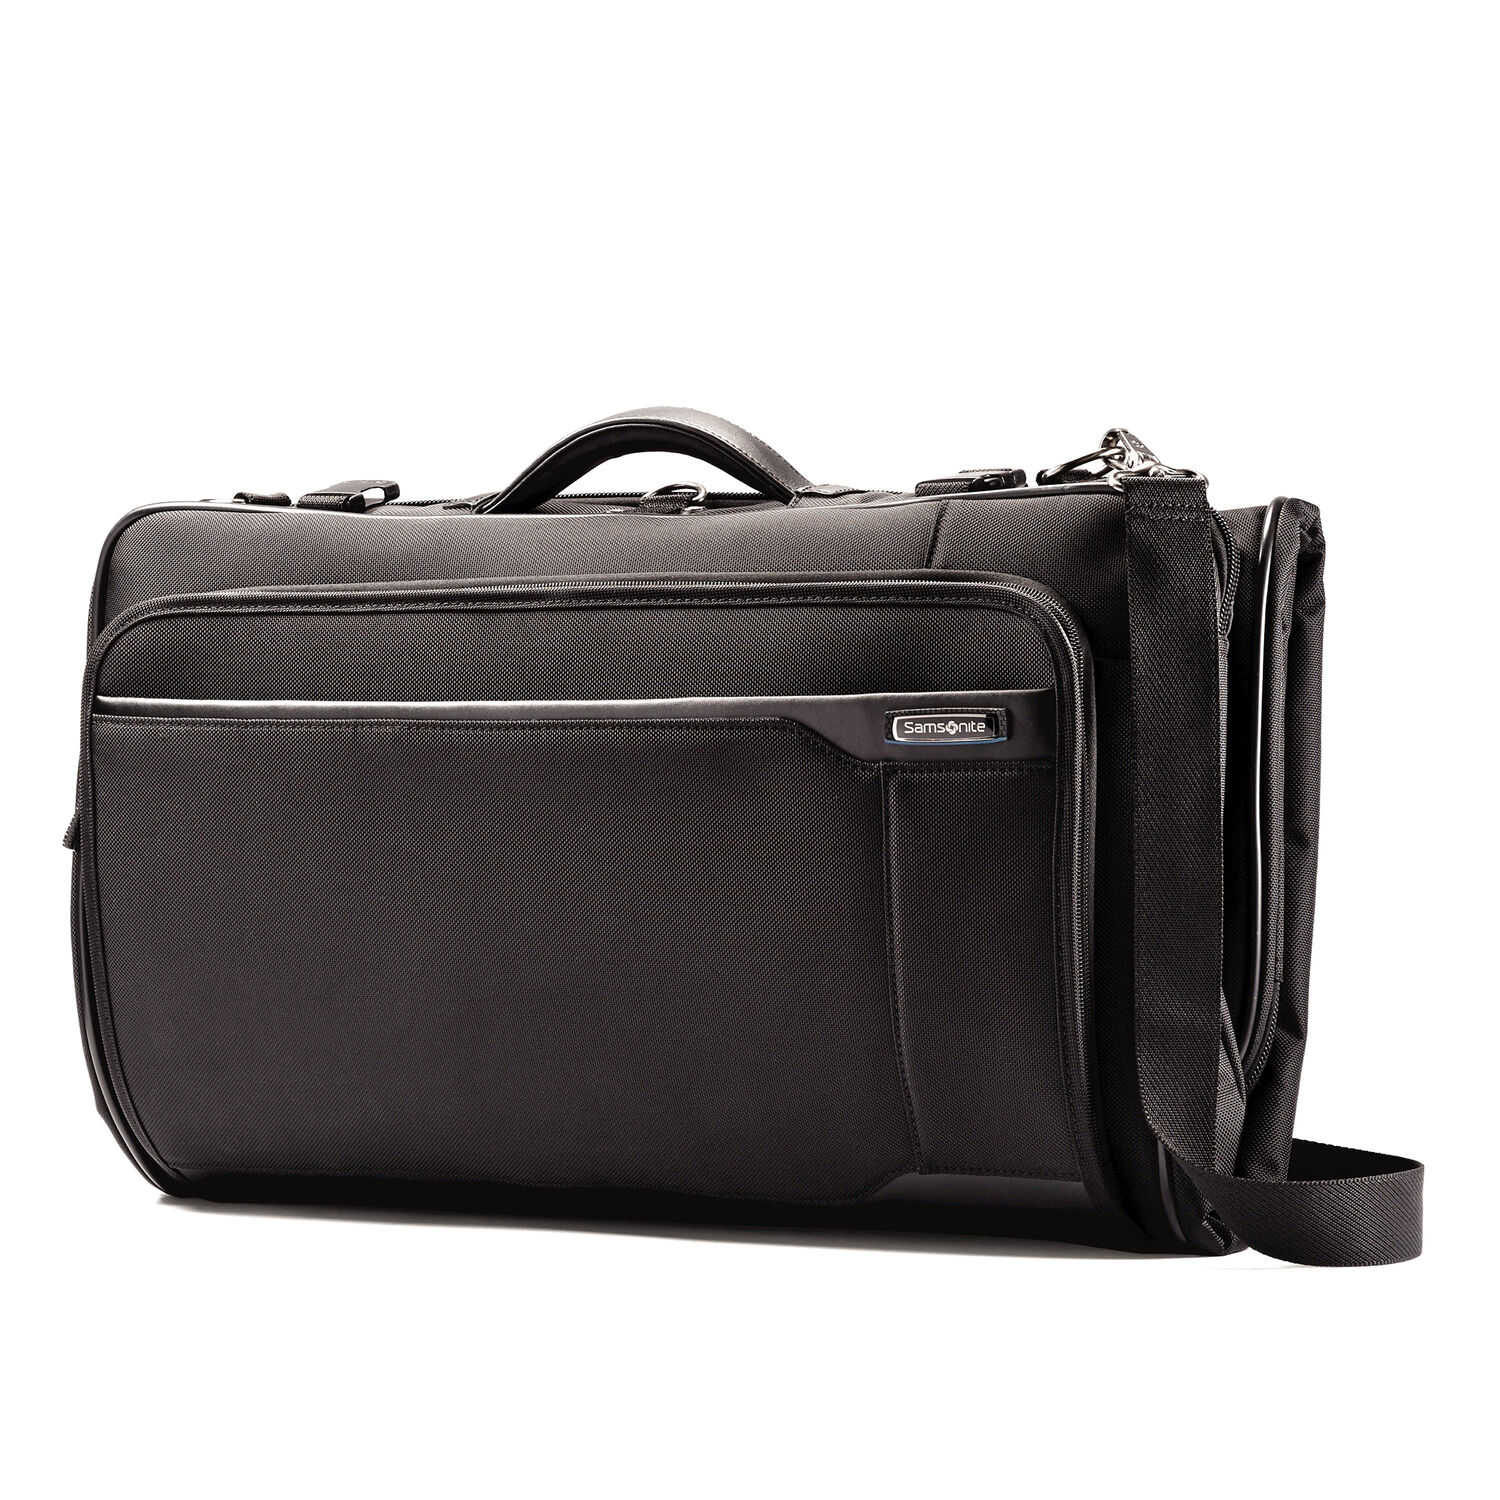 6fe46f4dc605 Samsonite Quadrion Trifold Garment Bag in the color Black.